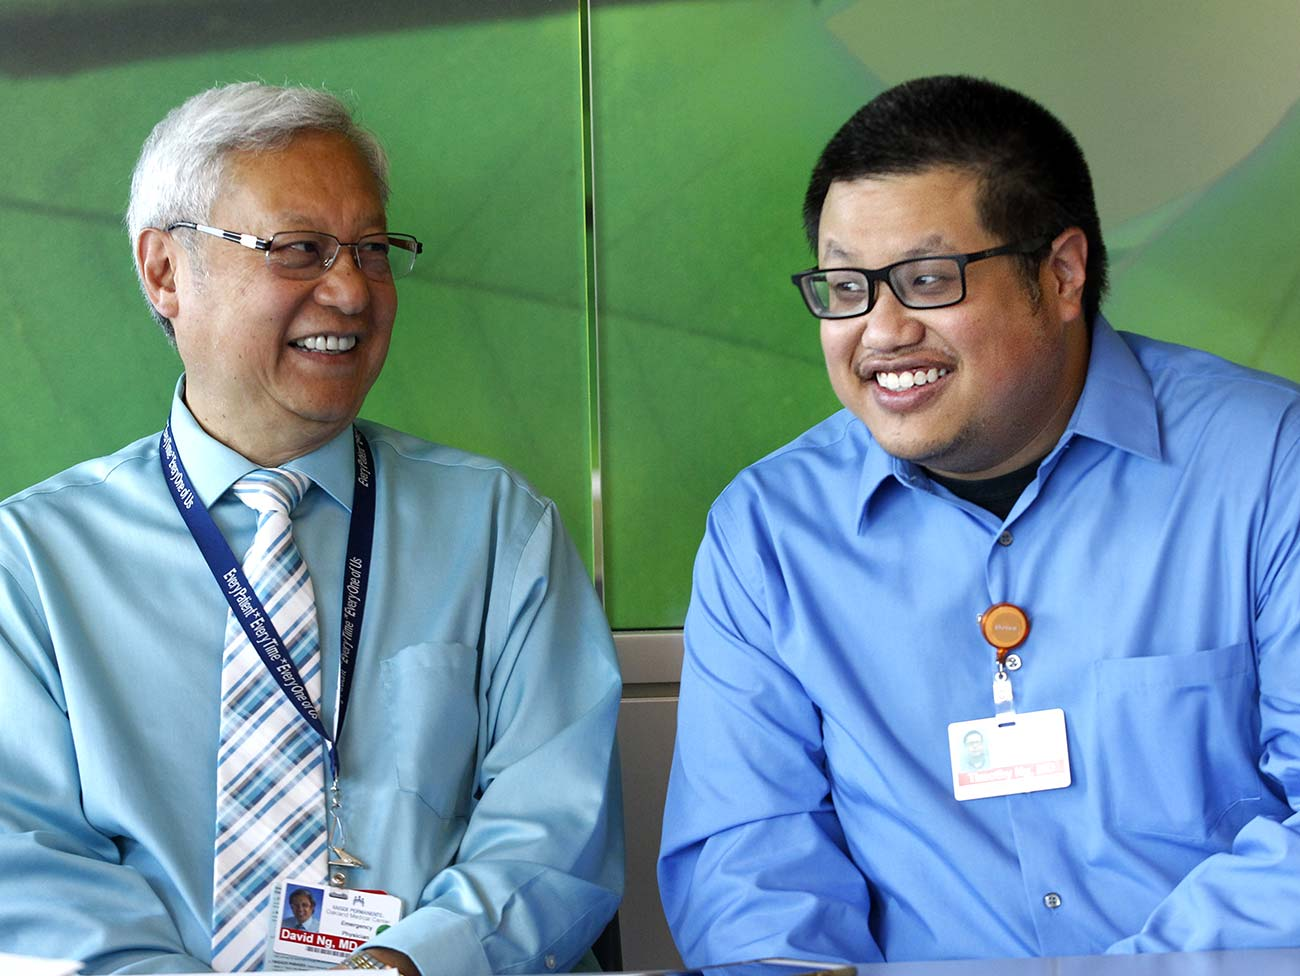 Kaiser Permanente physicians David Ng, MD and Timothy Ng, MD, sharing a laugh together.